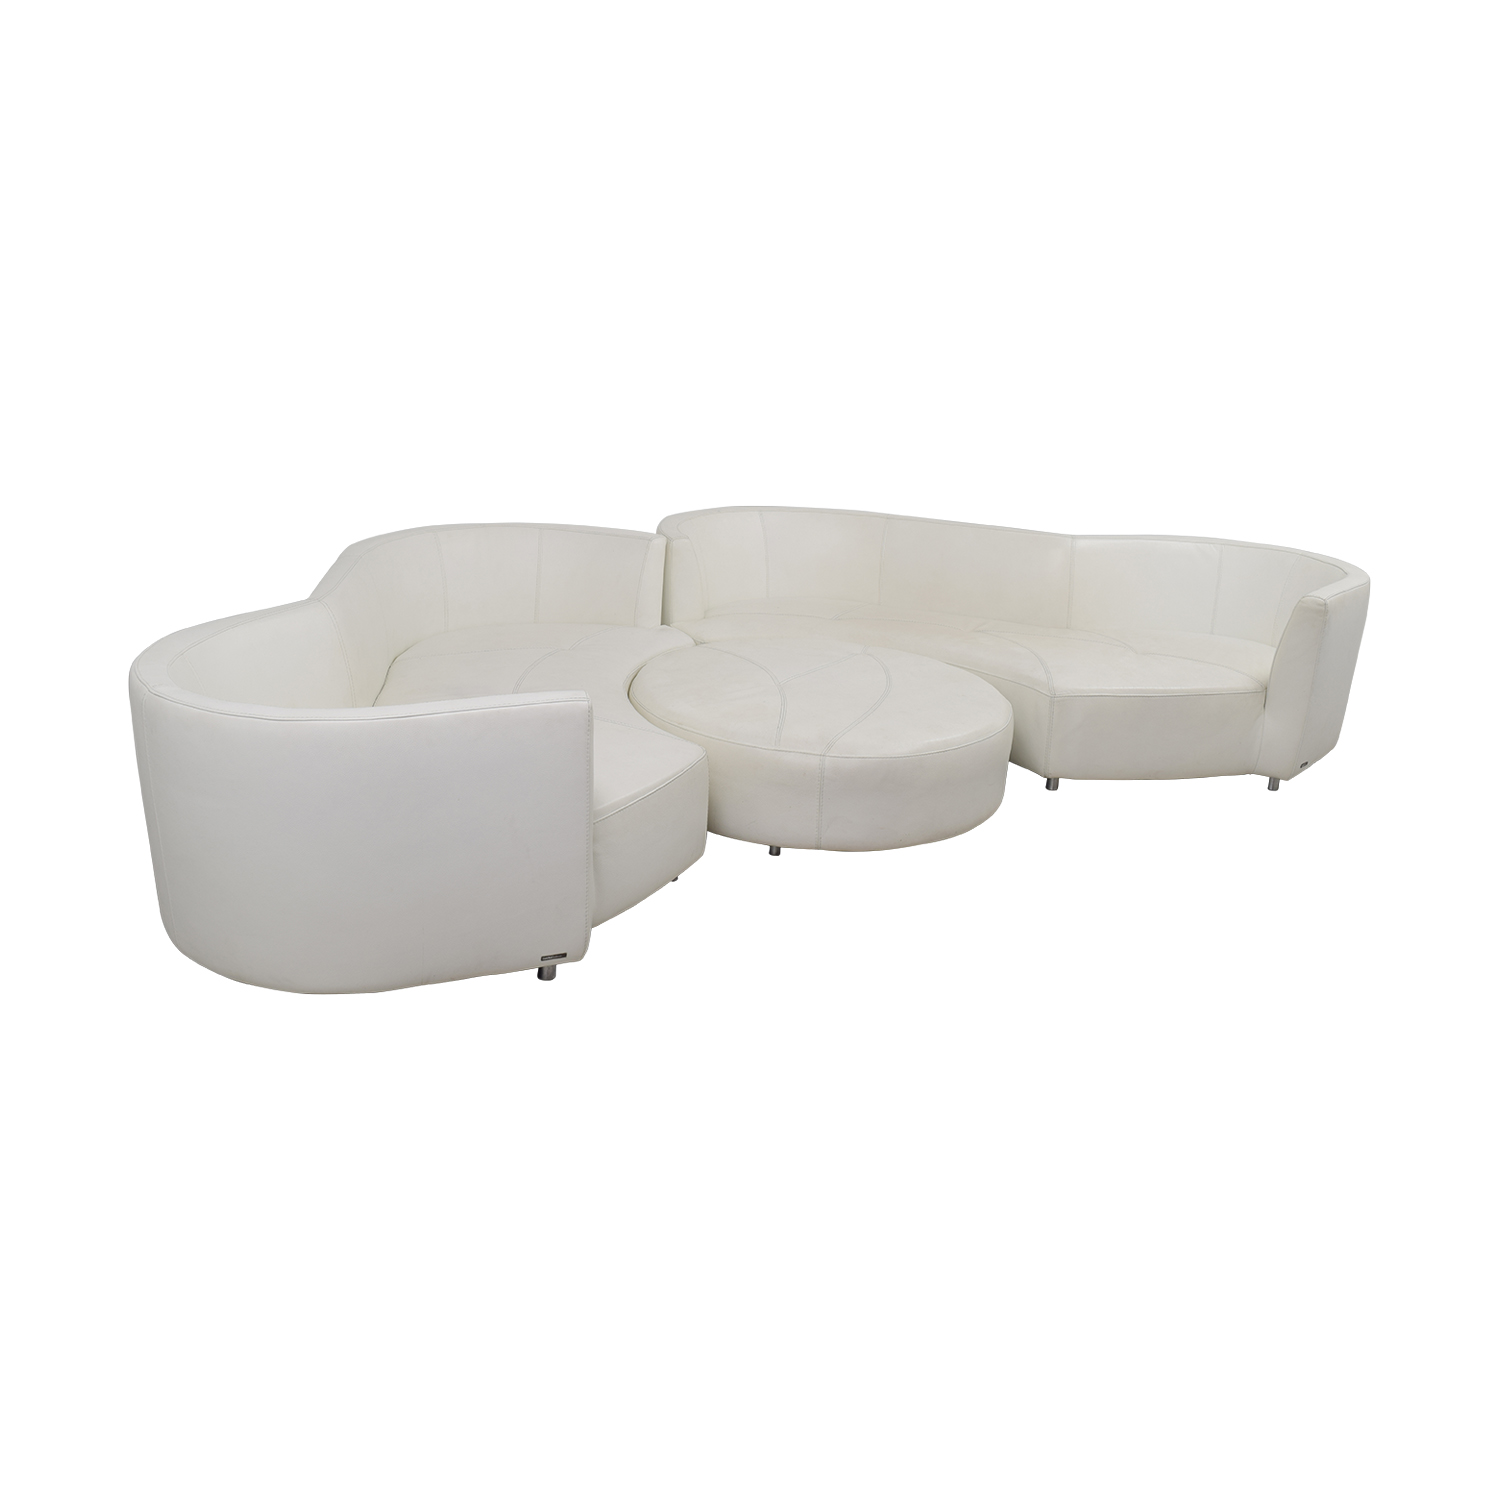 Roche Bobois White Digital Curved Three-Cushion Sofas with Ottoman / Sofas